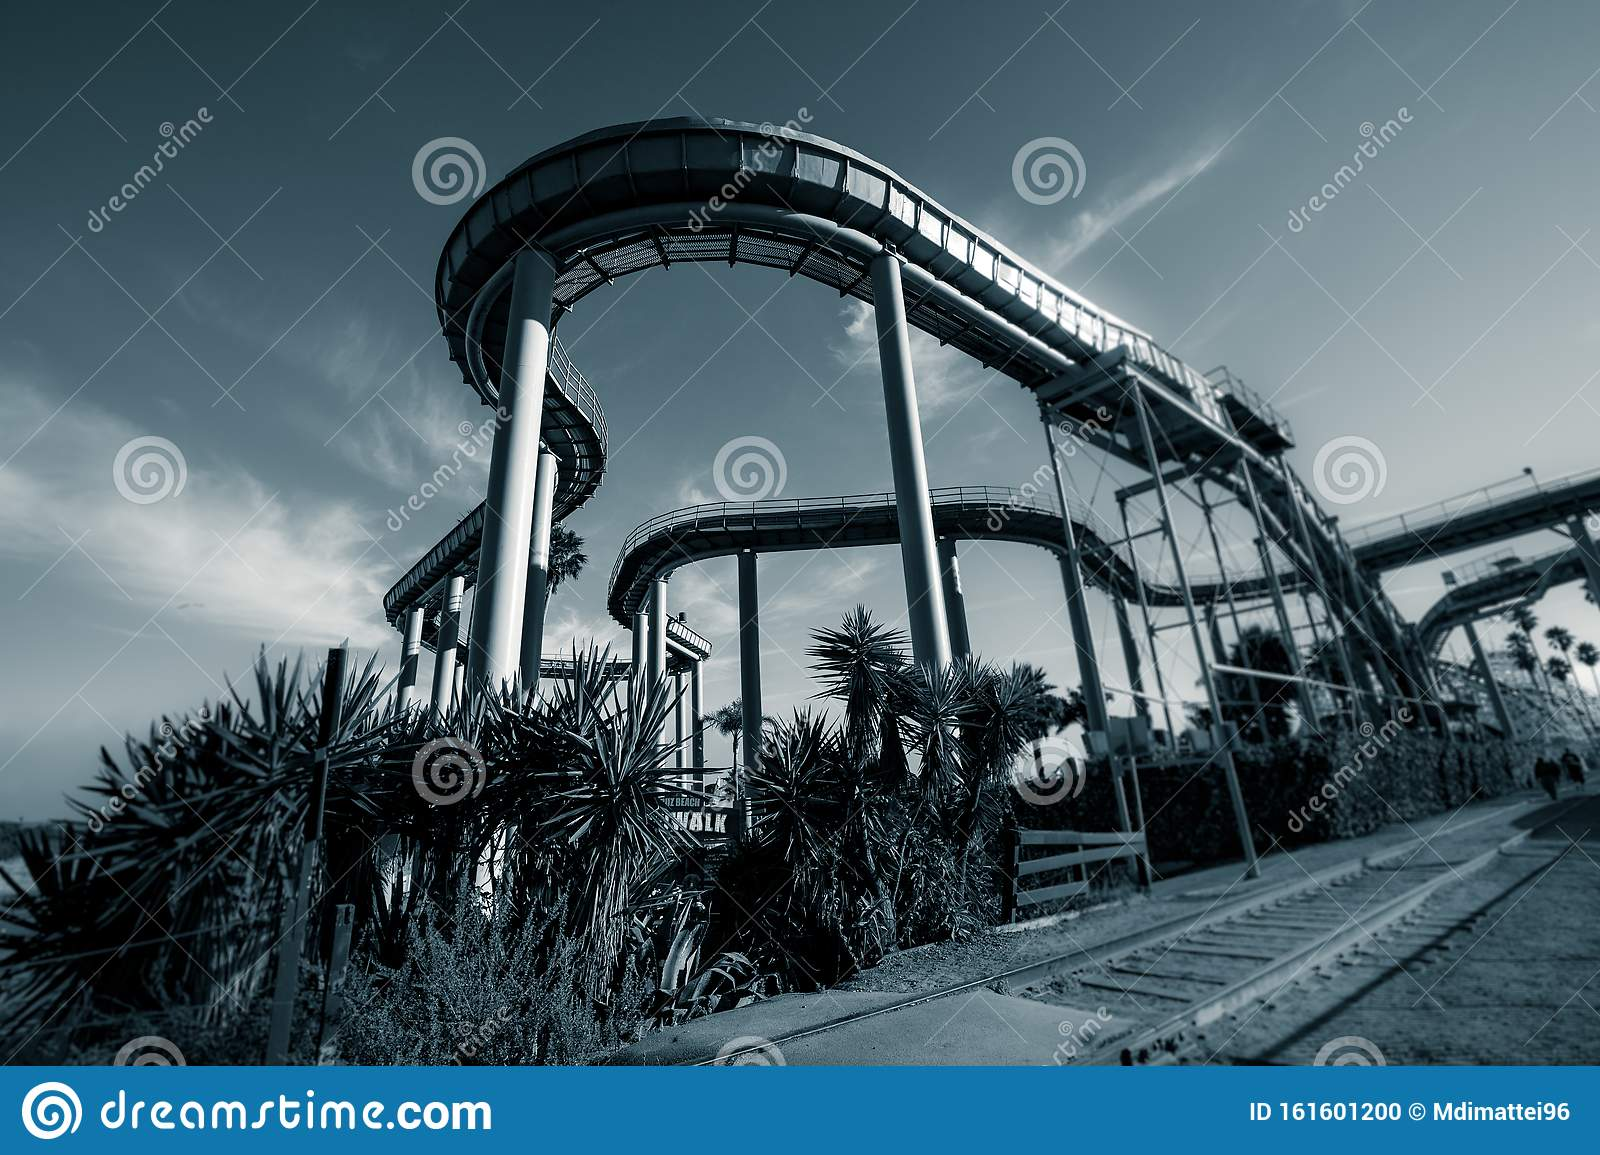 Scary Abandoned Amusement Park With Roller Coaster Tracks Largely In The Foreground Stock Photo Image Of Abandoned Weird 161601200